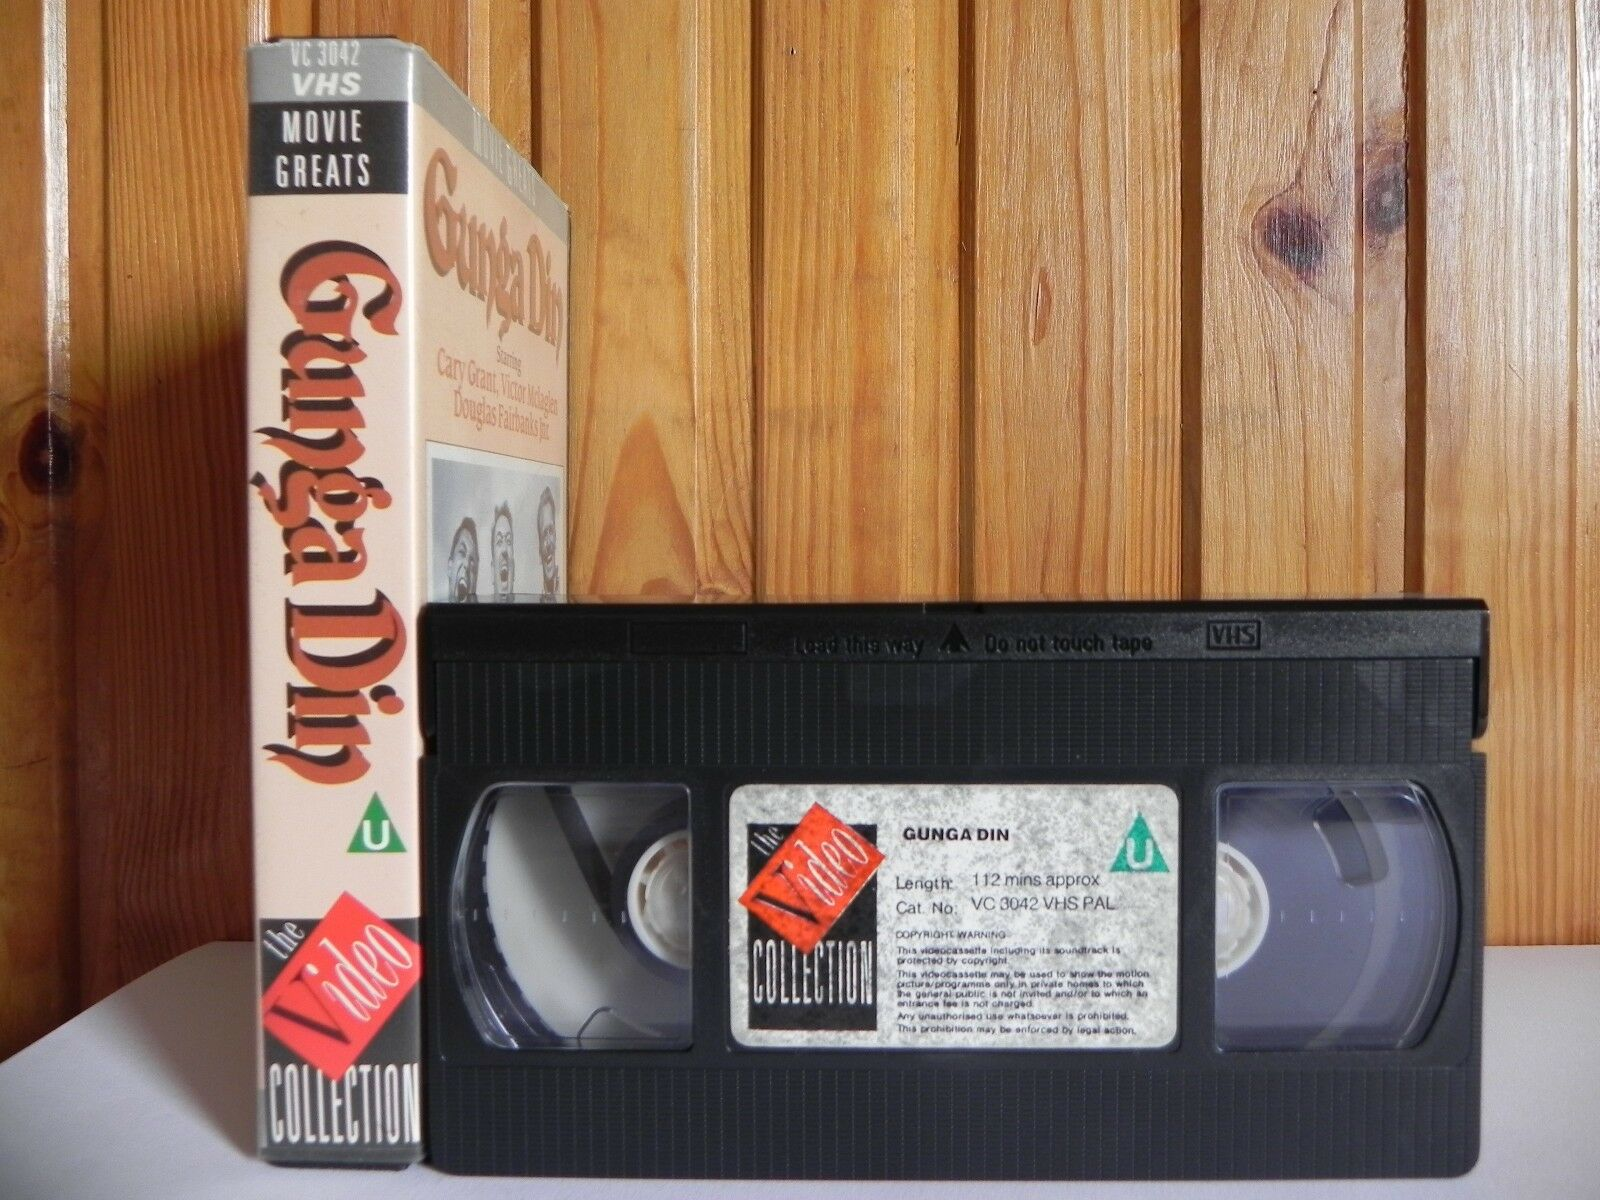 Gunga Din (1939); Movie Greats - War Comedy - Action Adventure - Cary Grant - Pal VHS